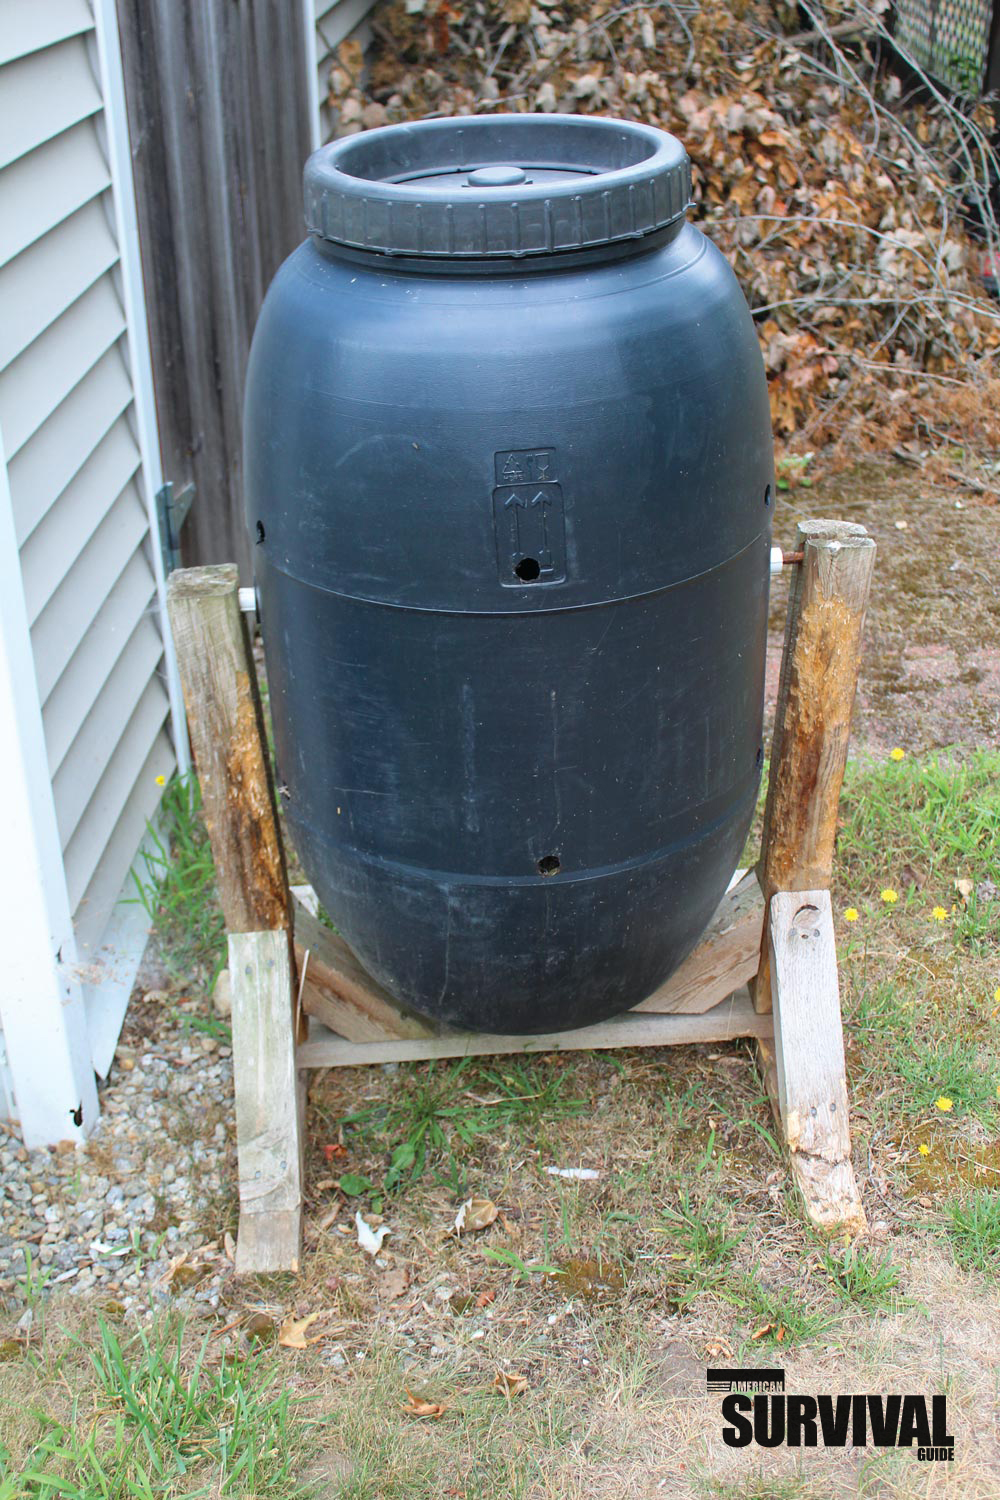 A barrel and some scrap wood can make a good compost bin. Compost will keep your garden healthy.